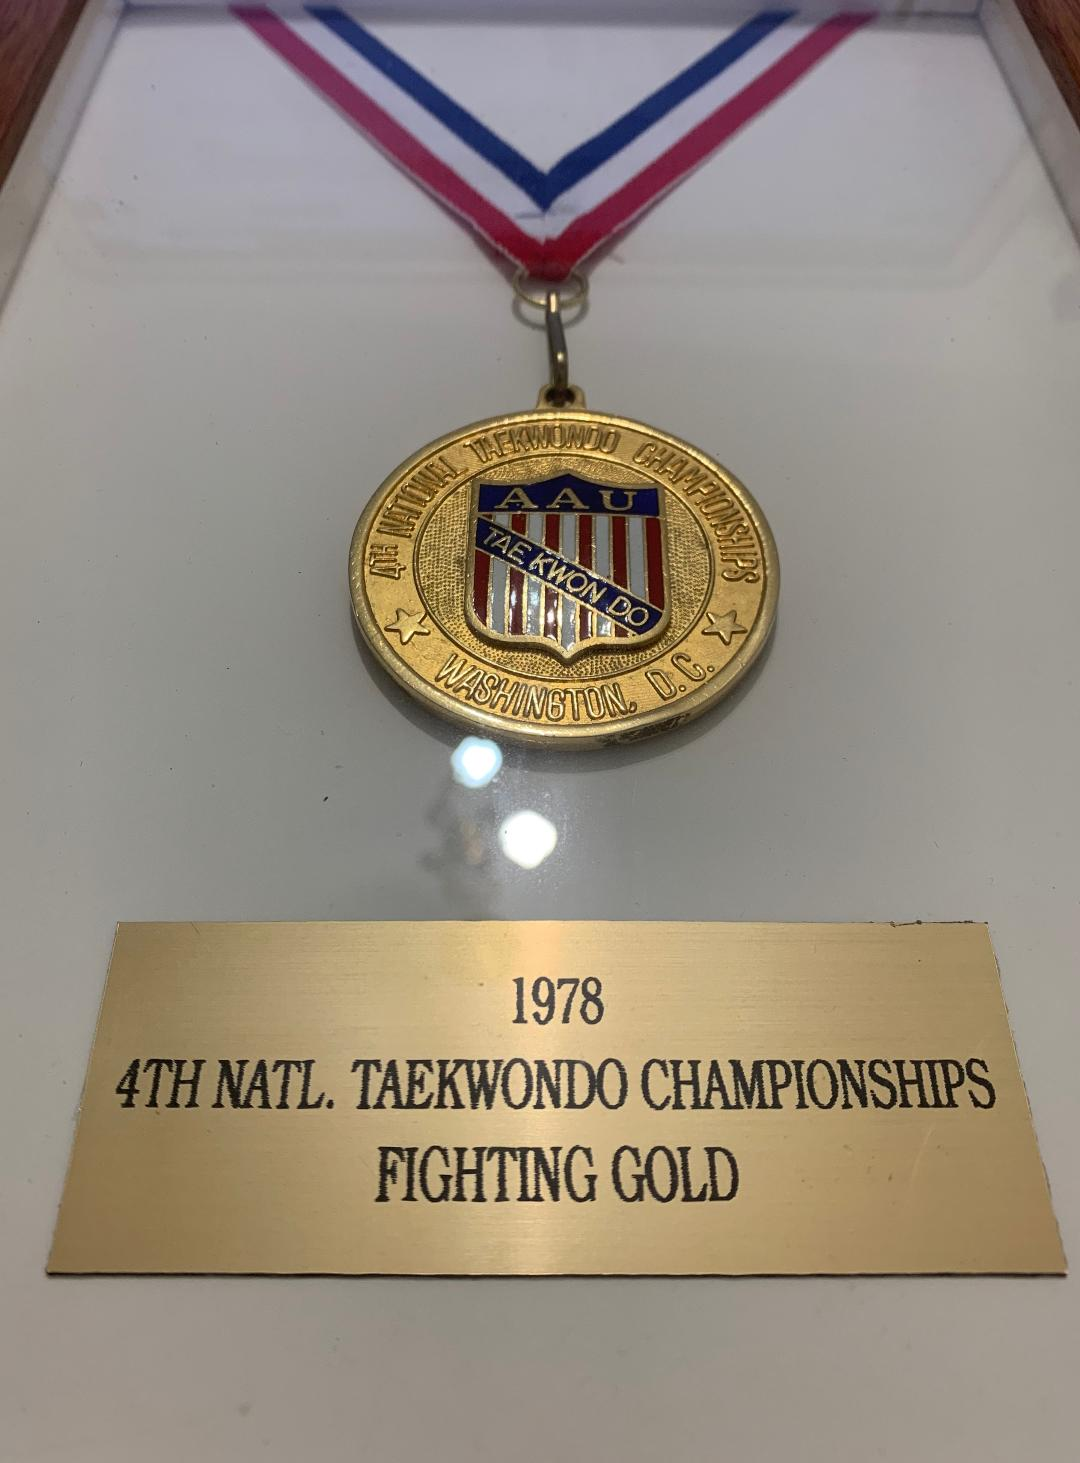 Gold Medal of the 4th National Taekwondo Championships held in 1978 under the auspices of the AAU